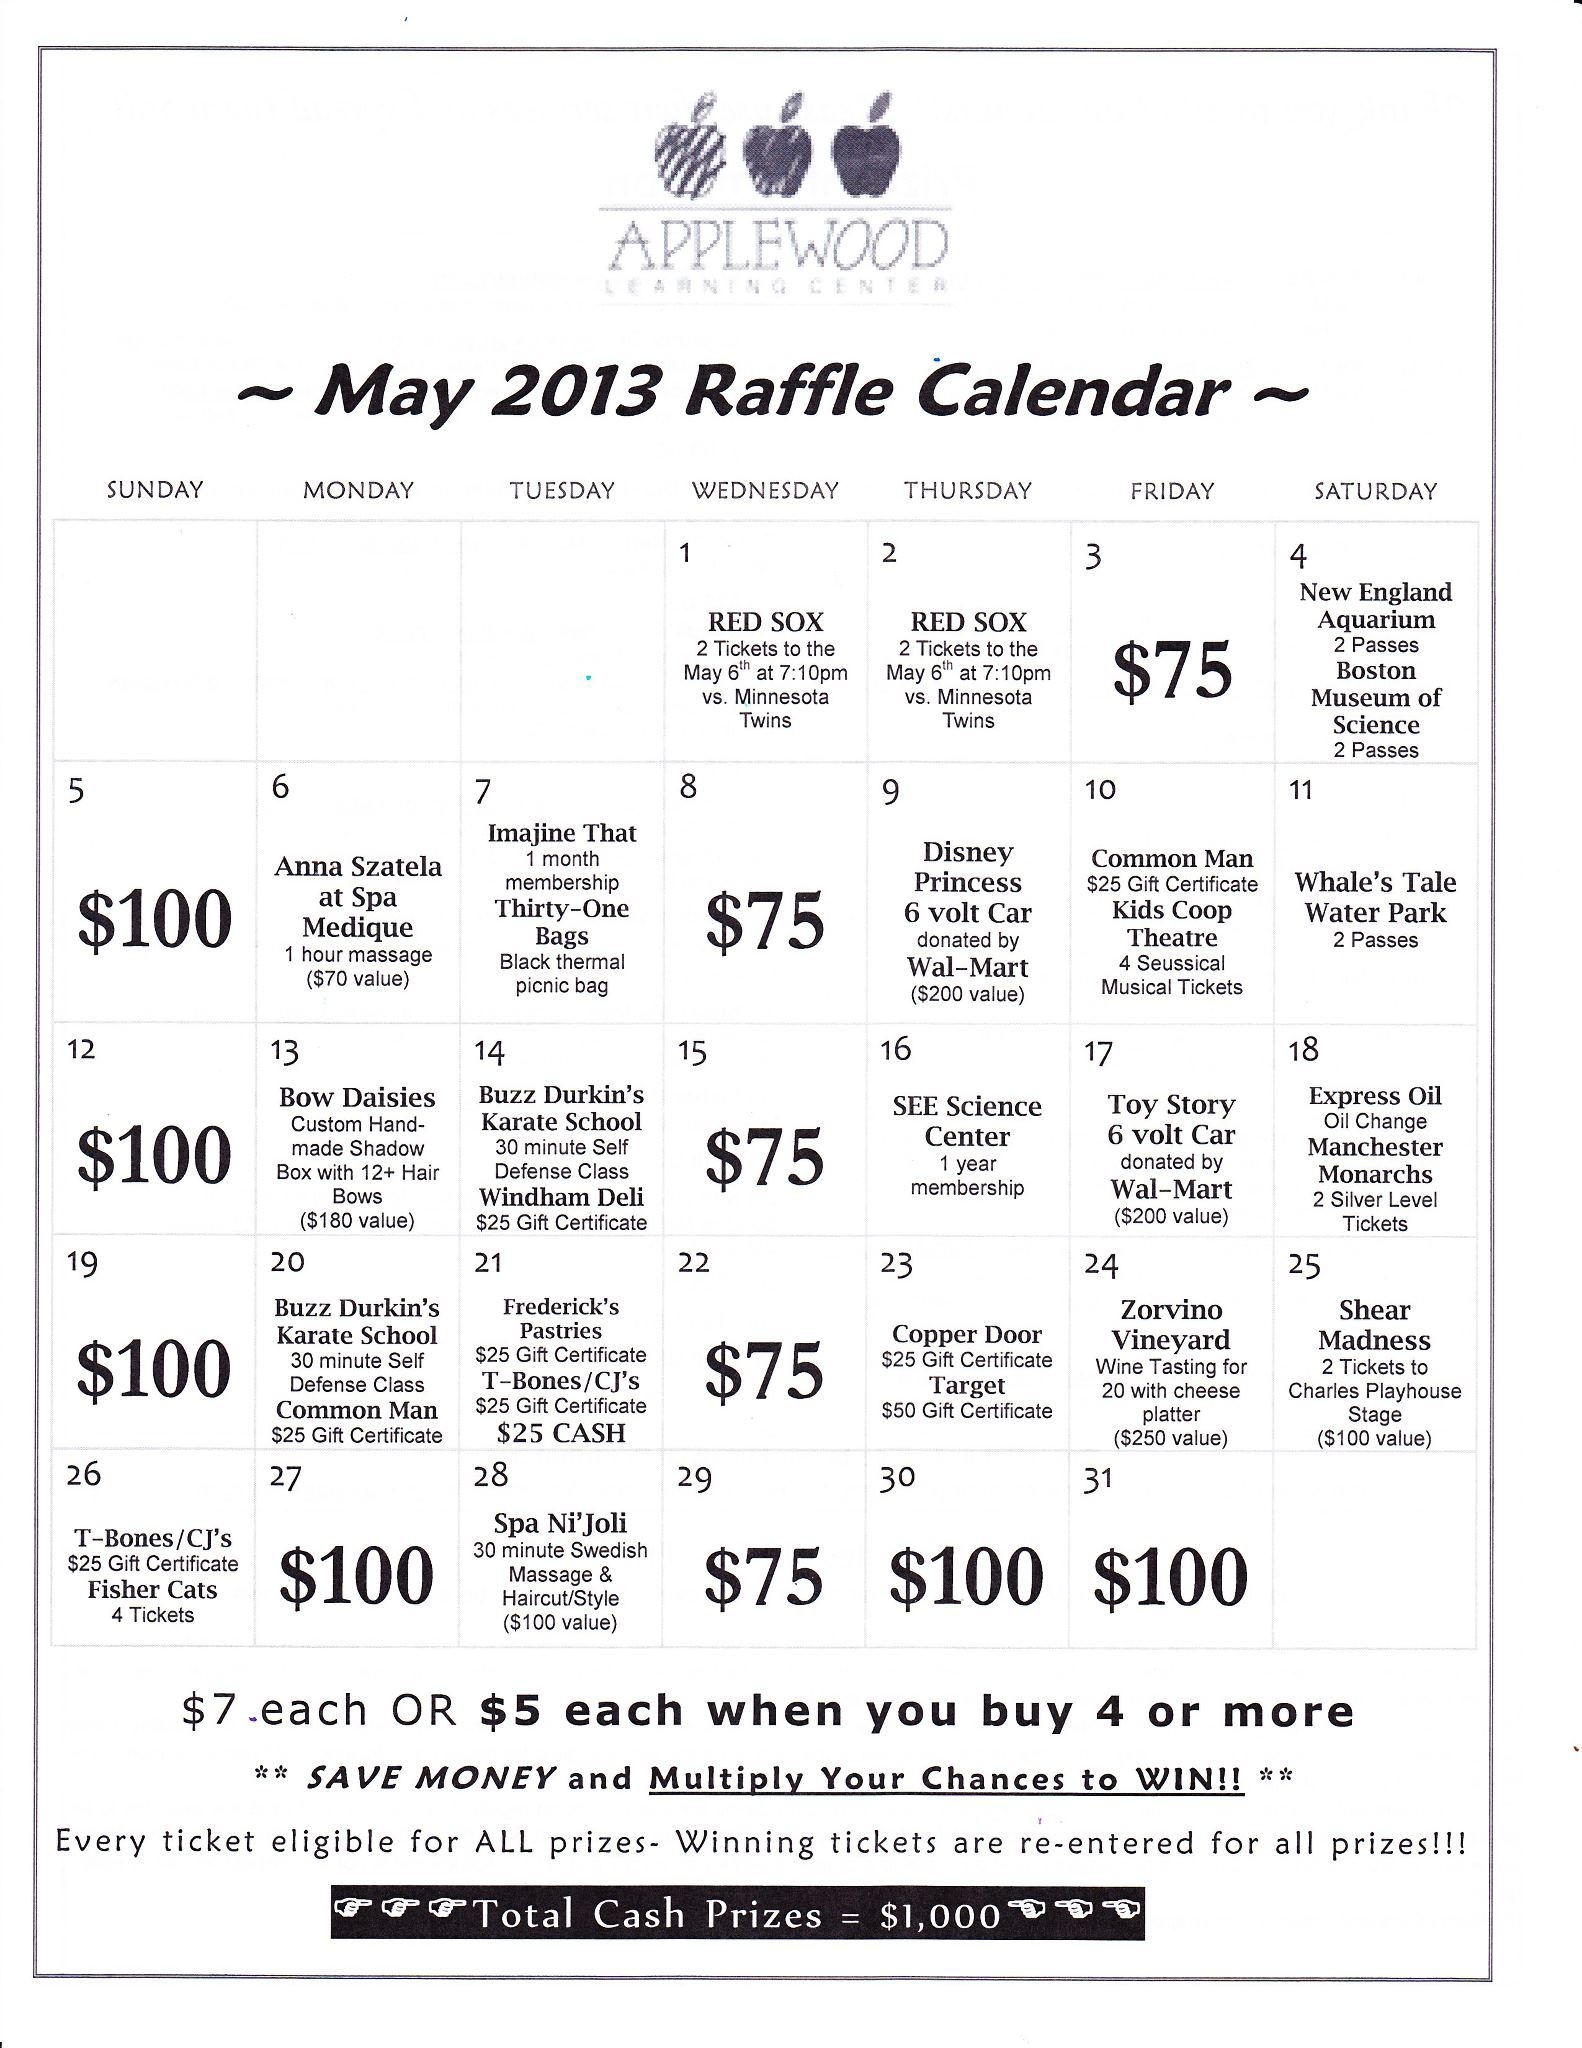 Annual Raffle Calendar Fundraiser | Applewood Learning Center